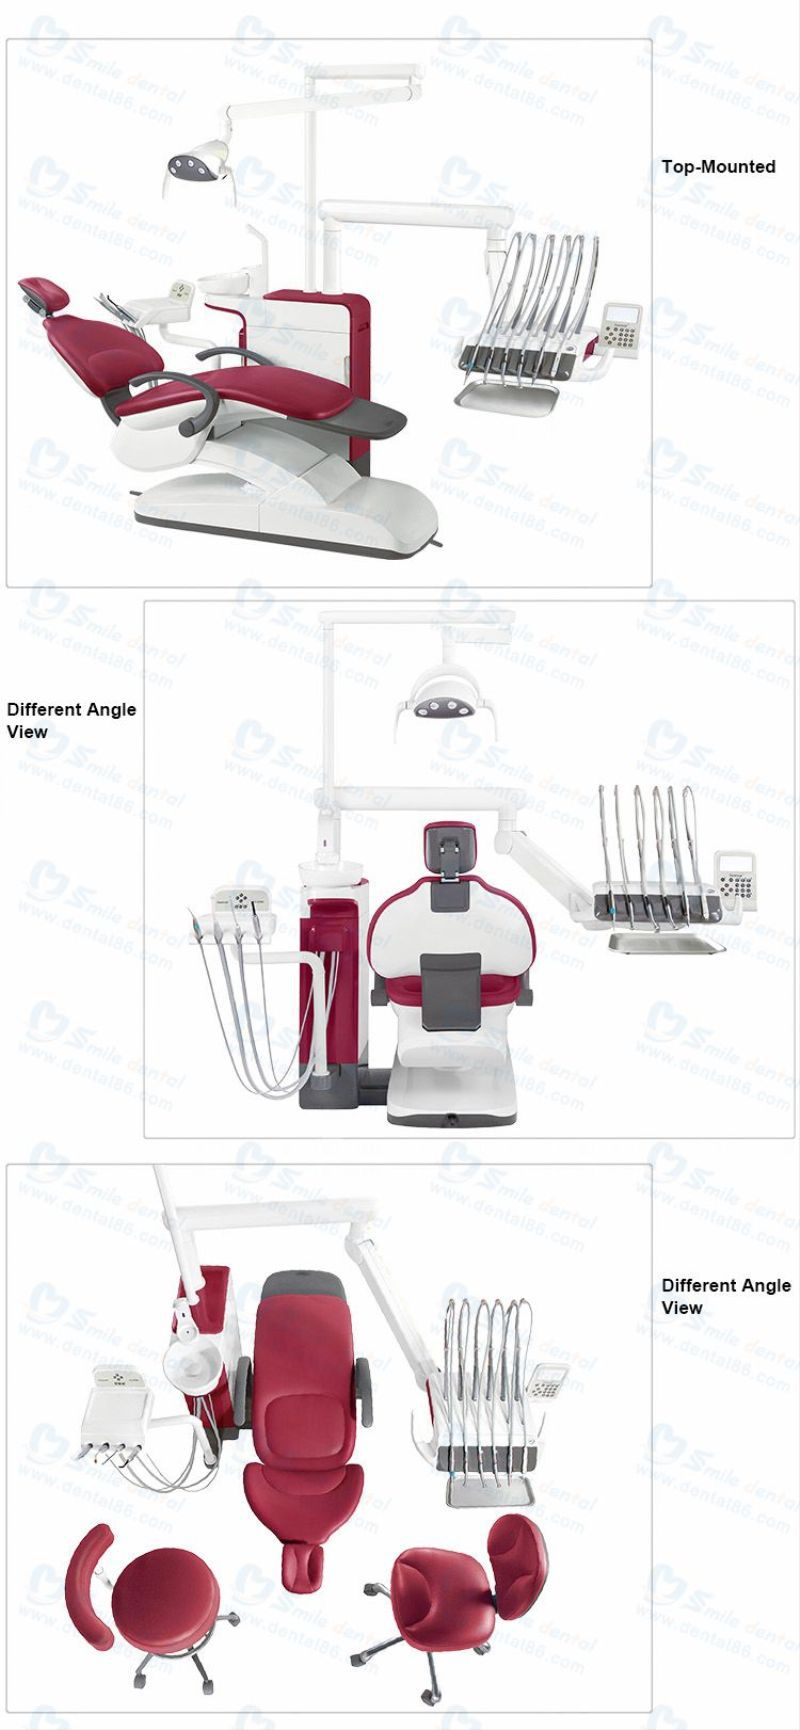 2016 new type Foshan hot sale CE best dental chair unit with LED light A580N